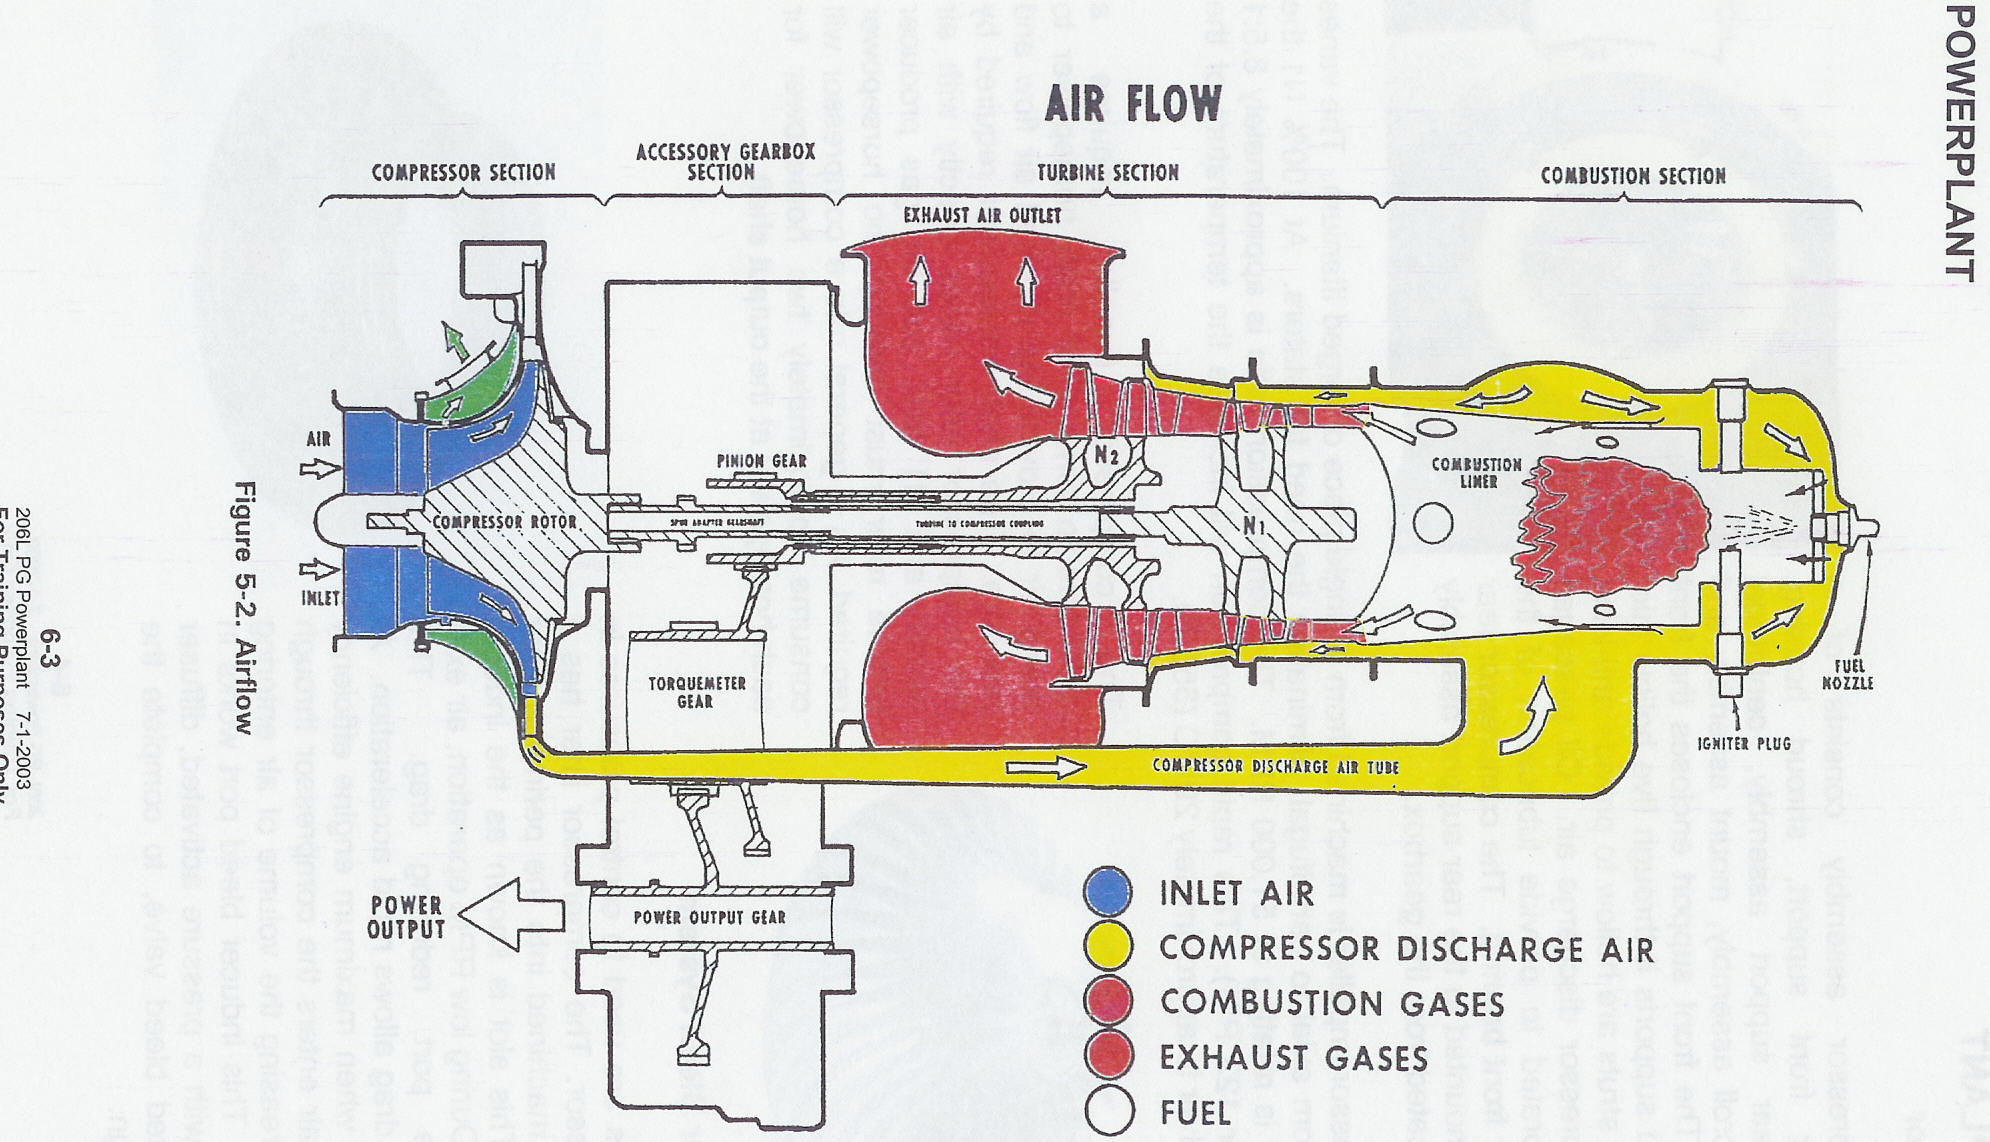 Allison Transmission Wiring Schematic Manual Of Diagram 740 Diagrams Rolls Royce 250 Engine F405